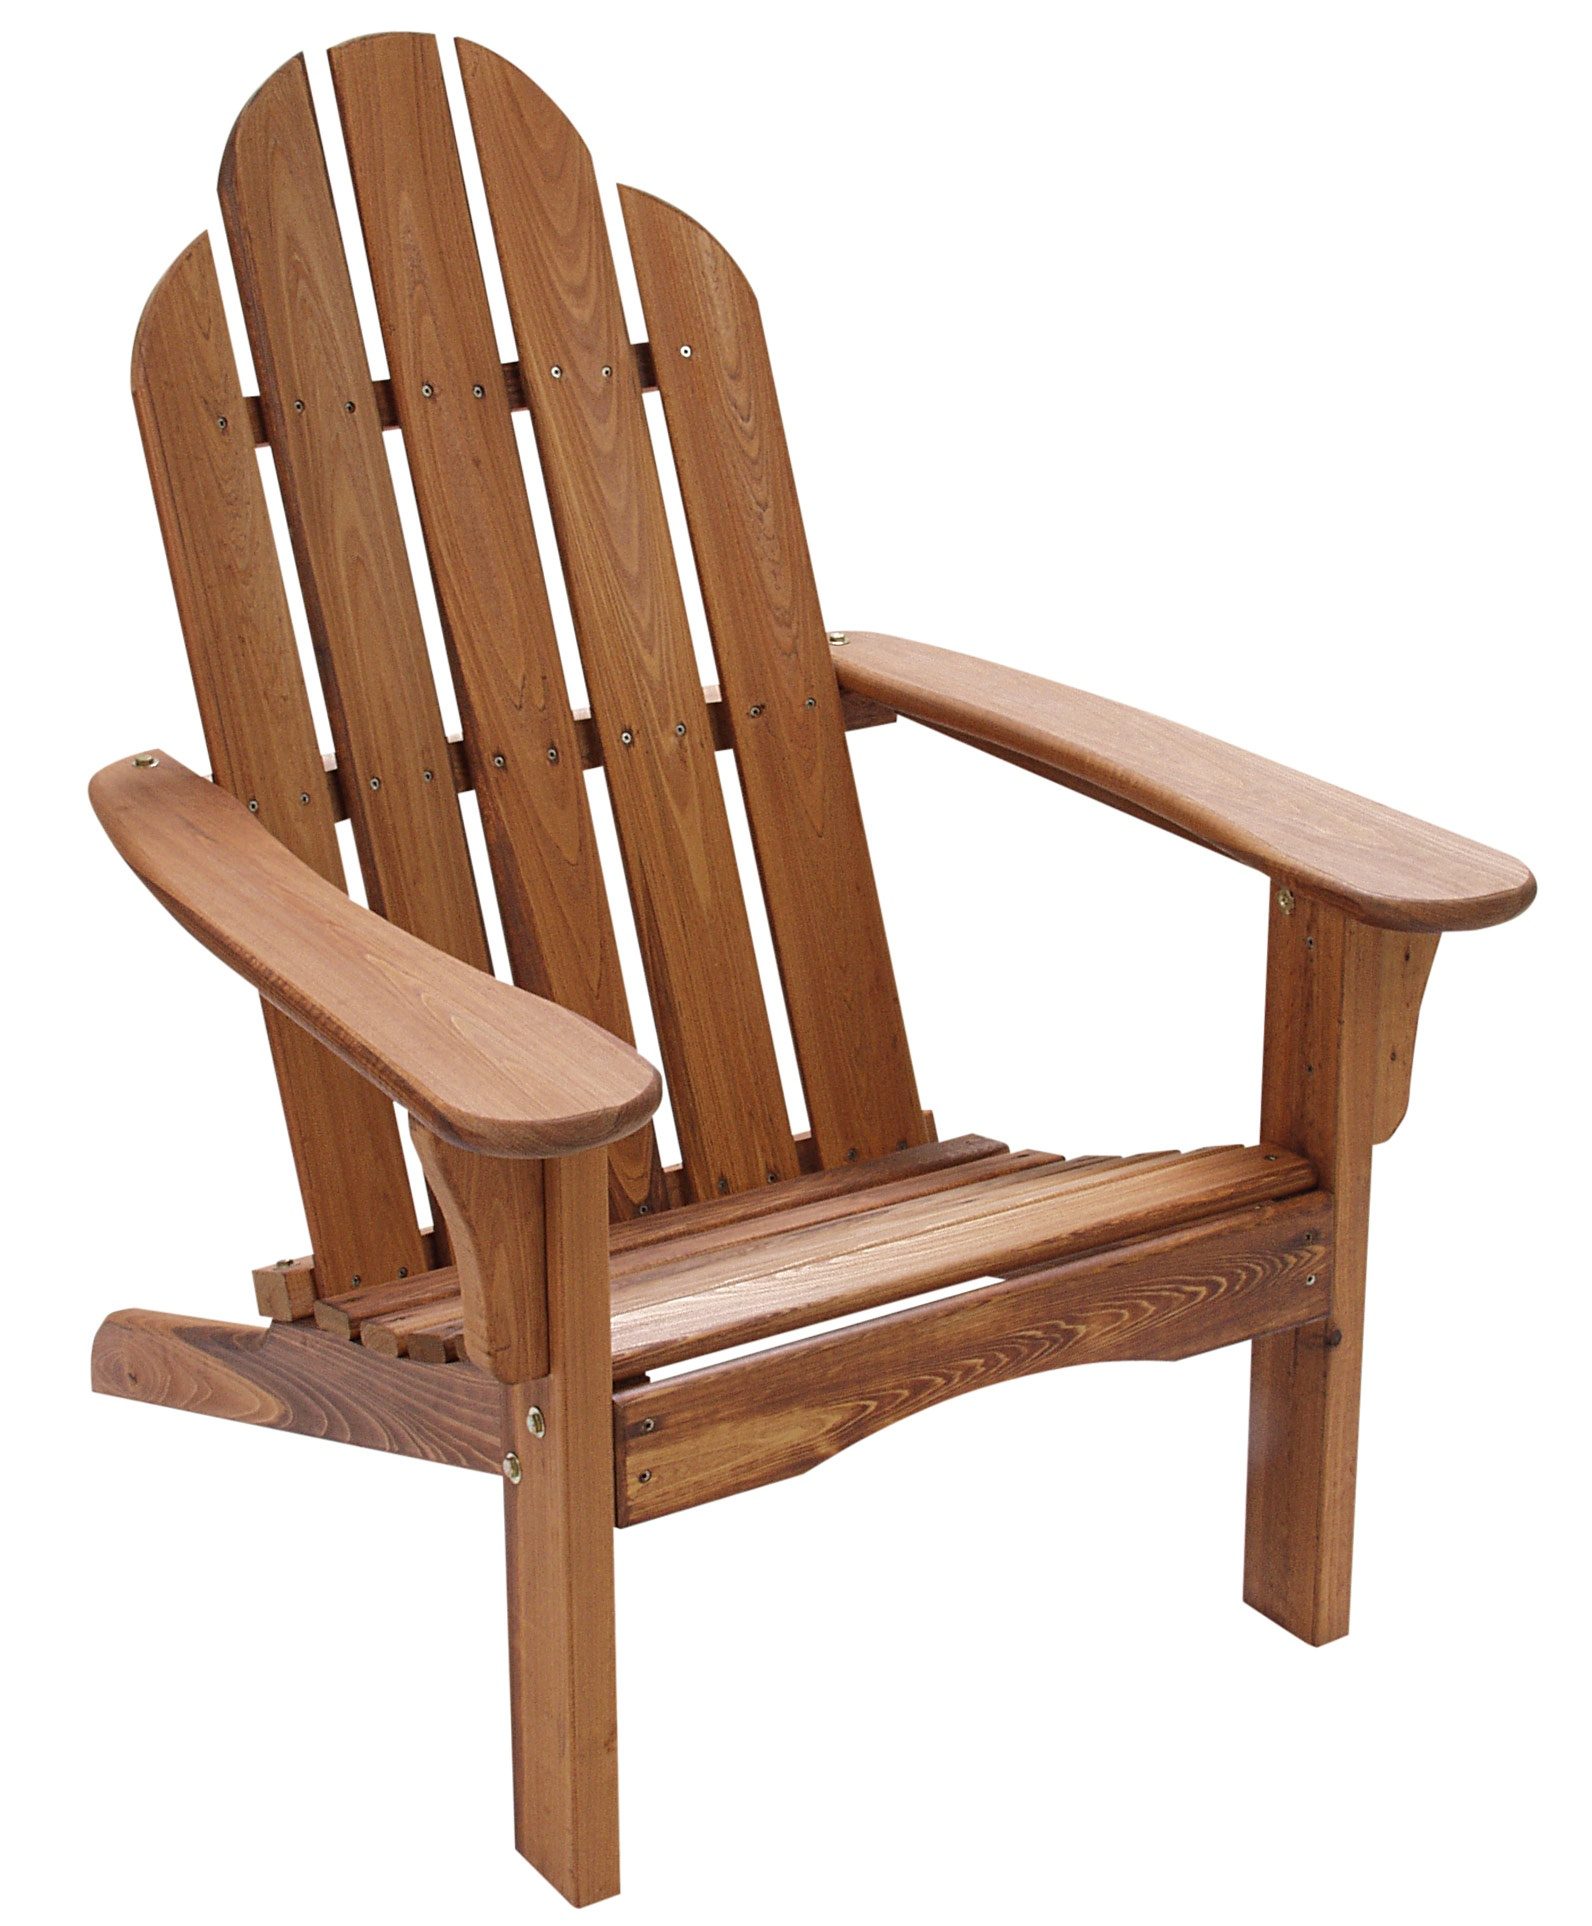 Ace Adirondack Chairs